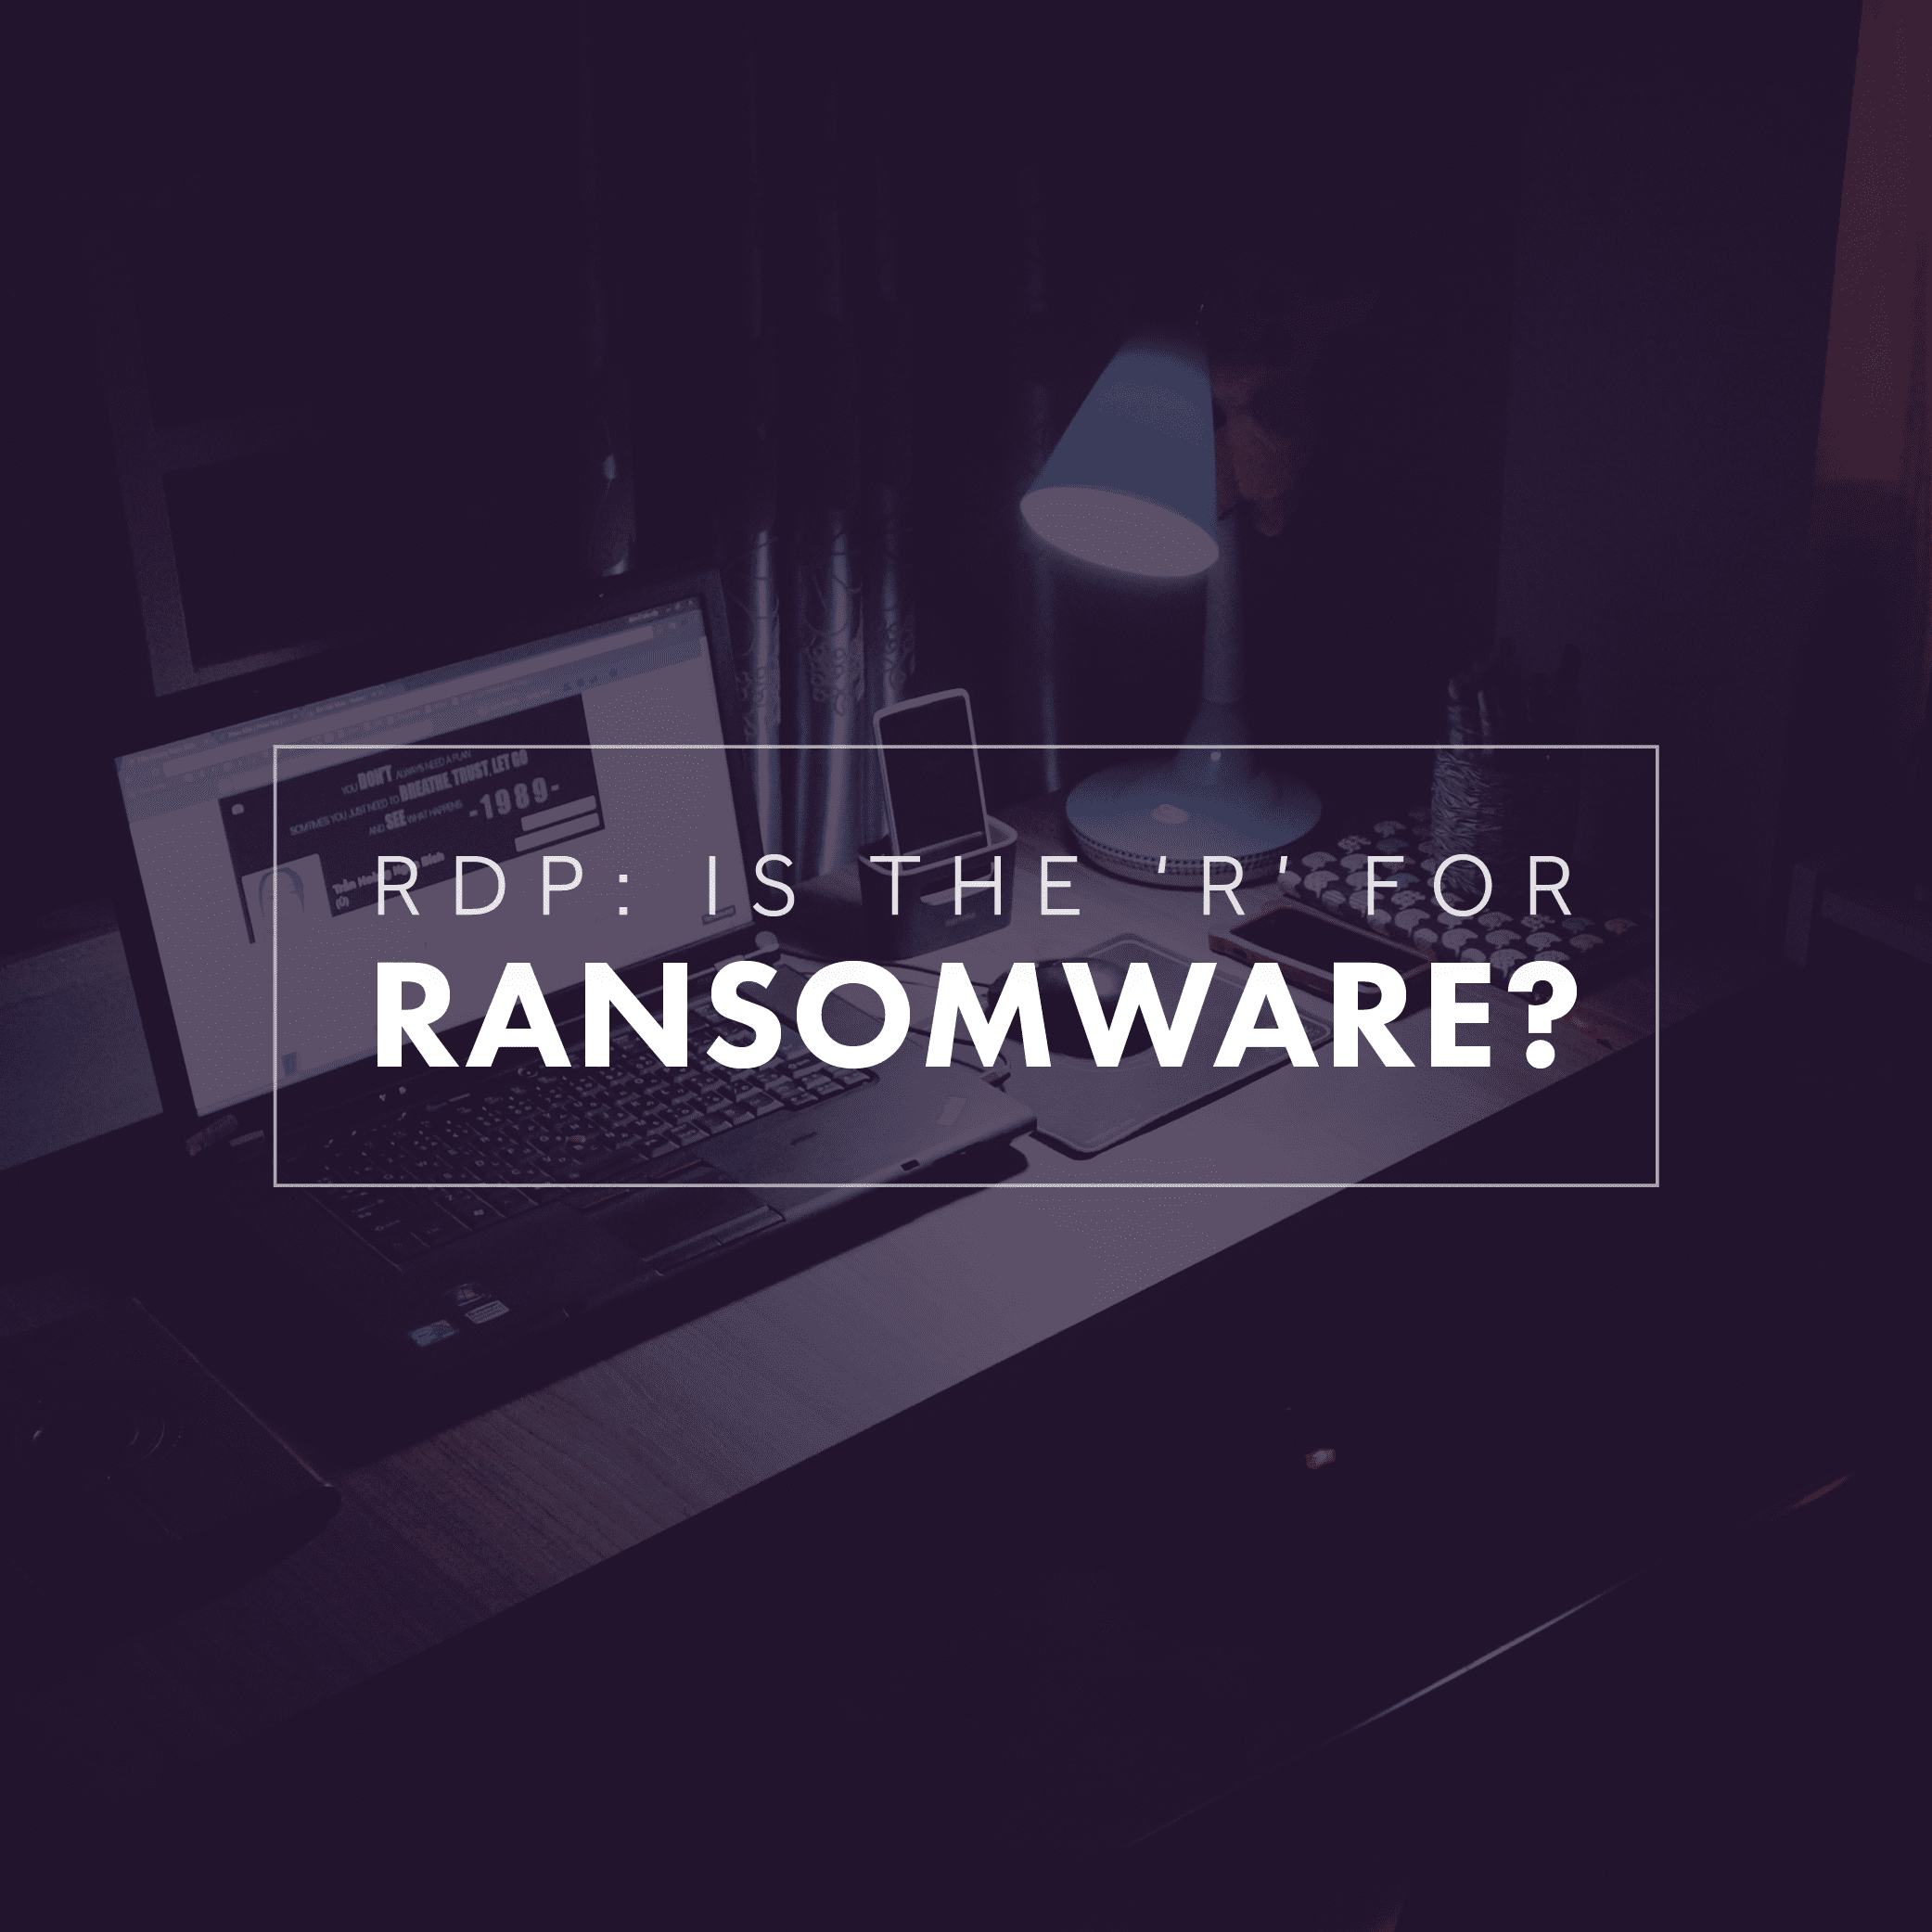 RDP: Is the 'R' for Ransomware?